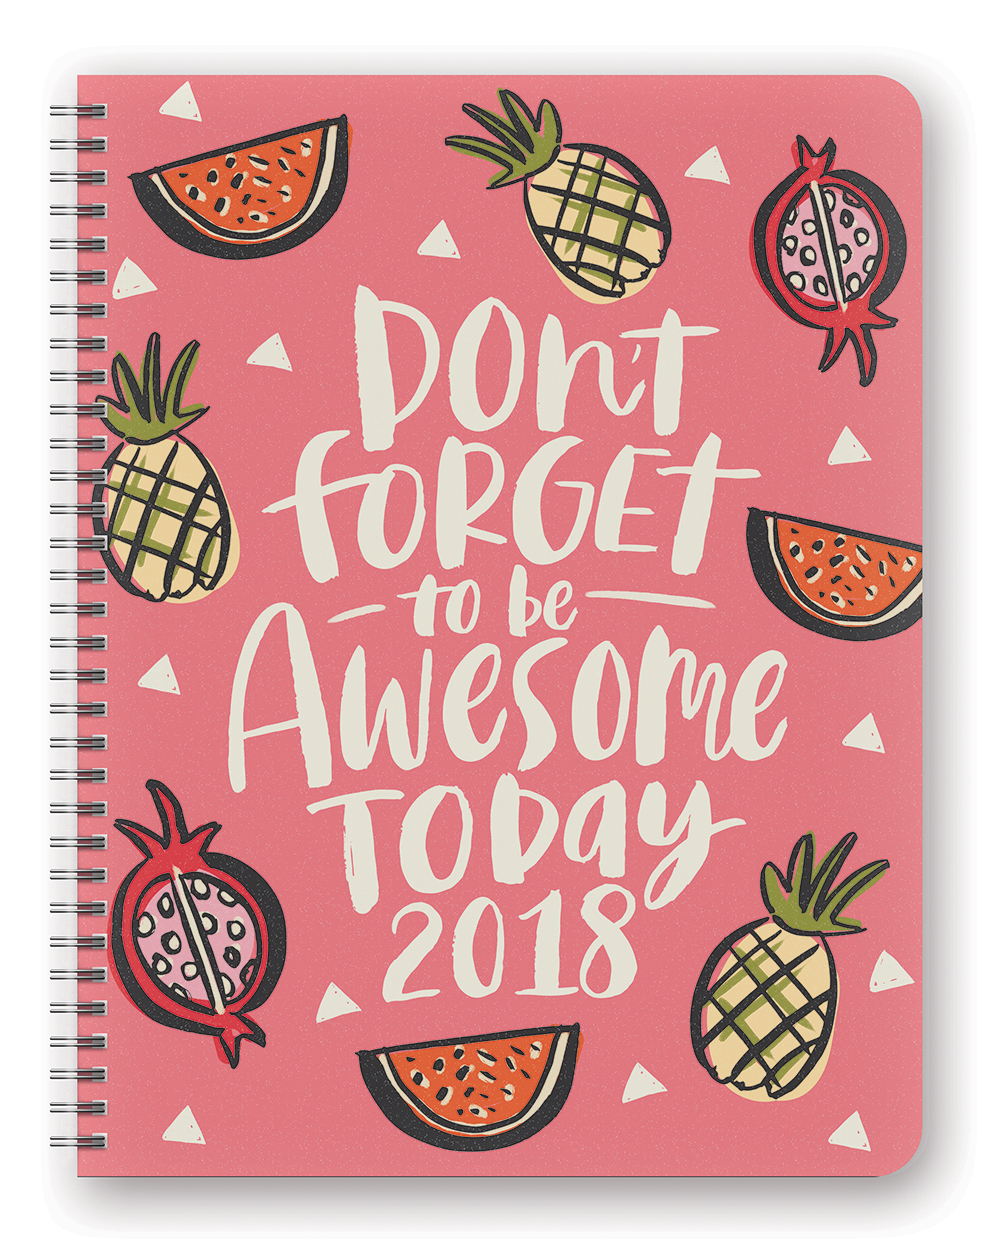 Be Awesome Today Extra Large Flexi Planner 2018 by Orange Circle Studio 9781682582503